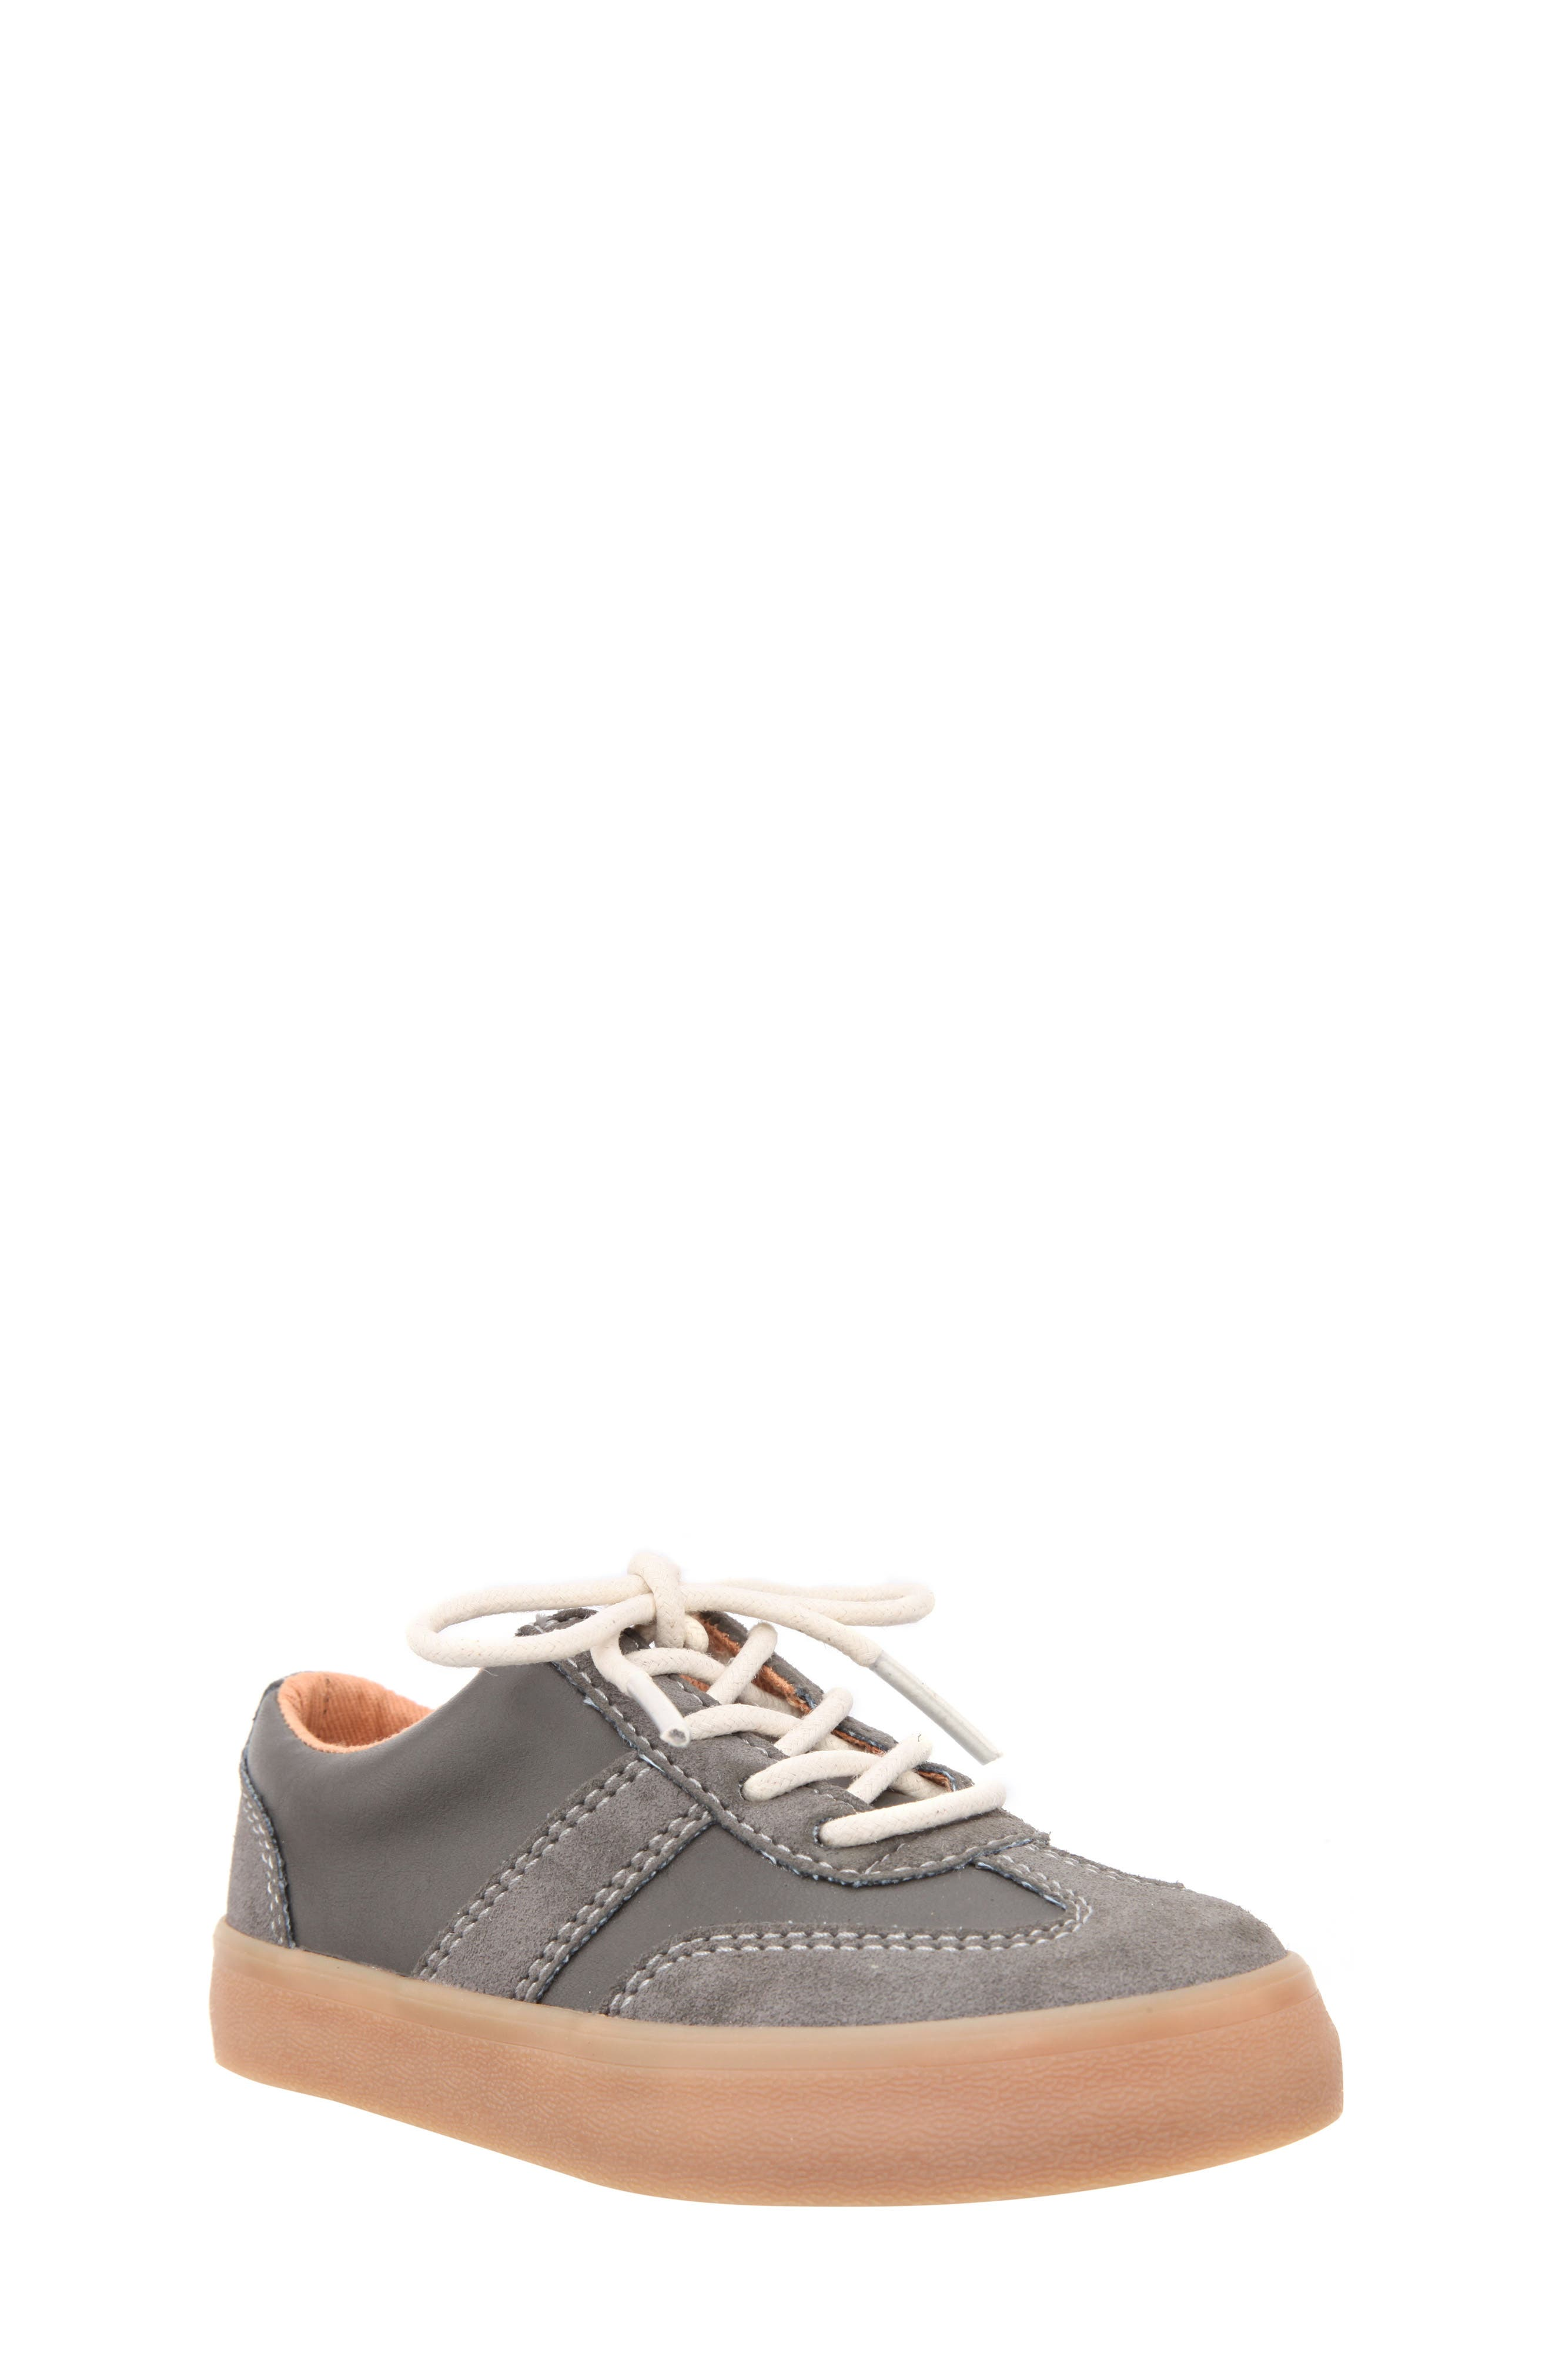 Neal Low Top Sneaker,                             Main thumbnail 1, color,                             064